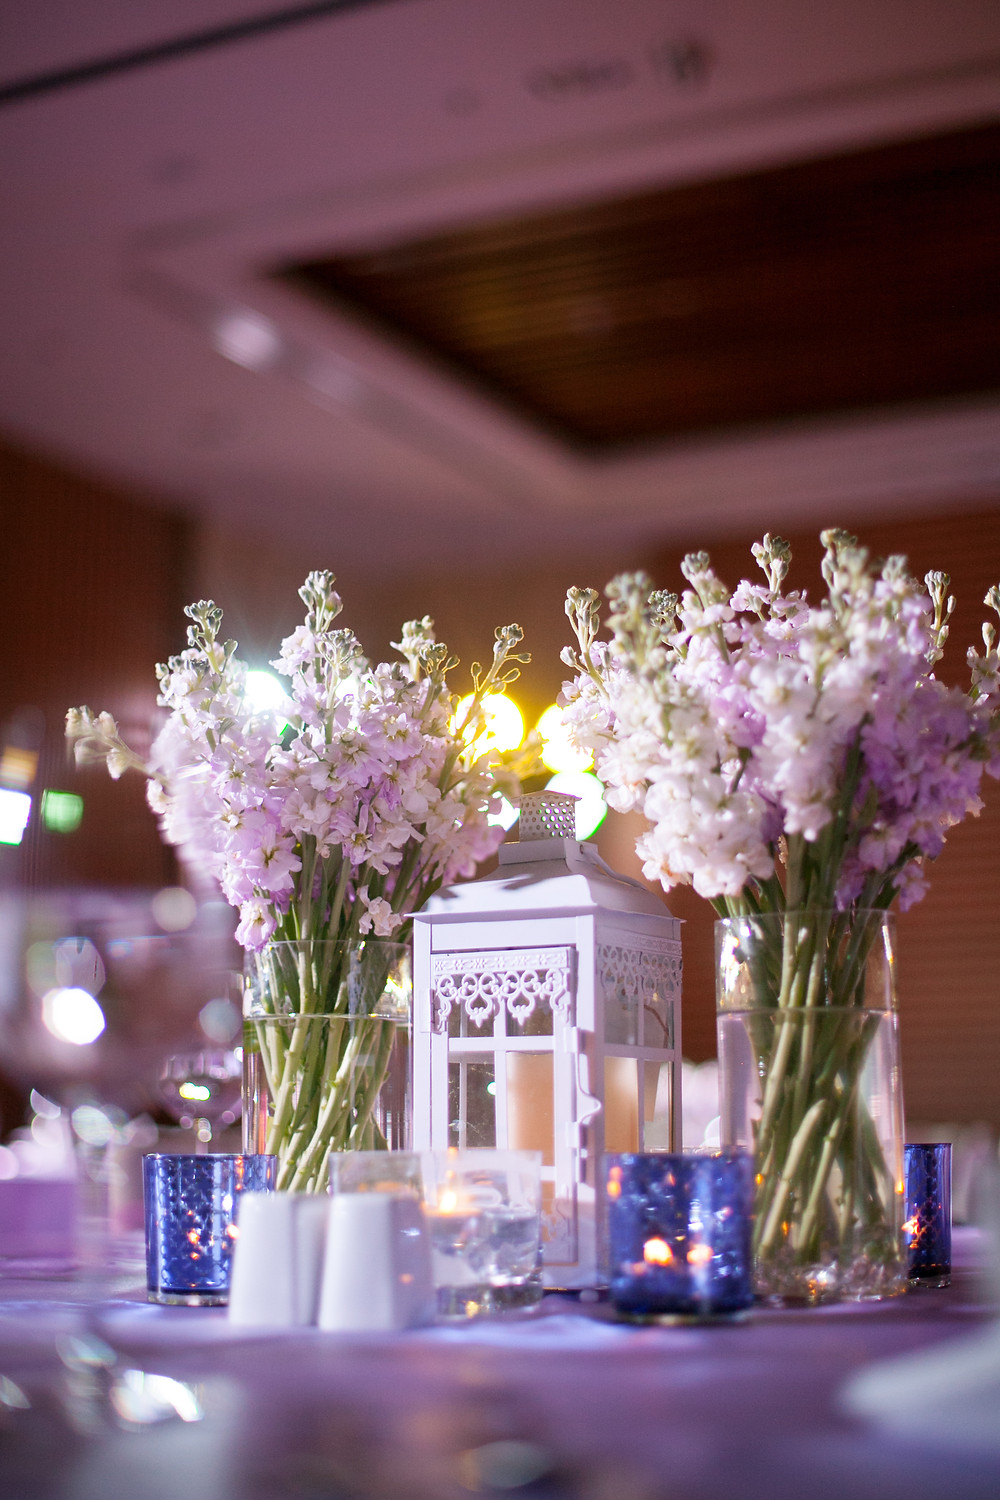 Extra Floral moment throughout the reception venue created a beautiful rustic table